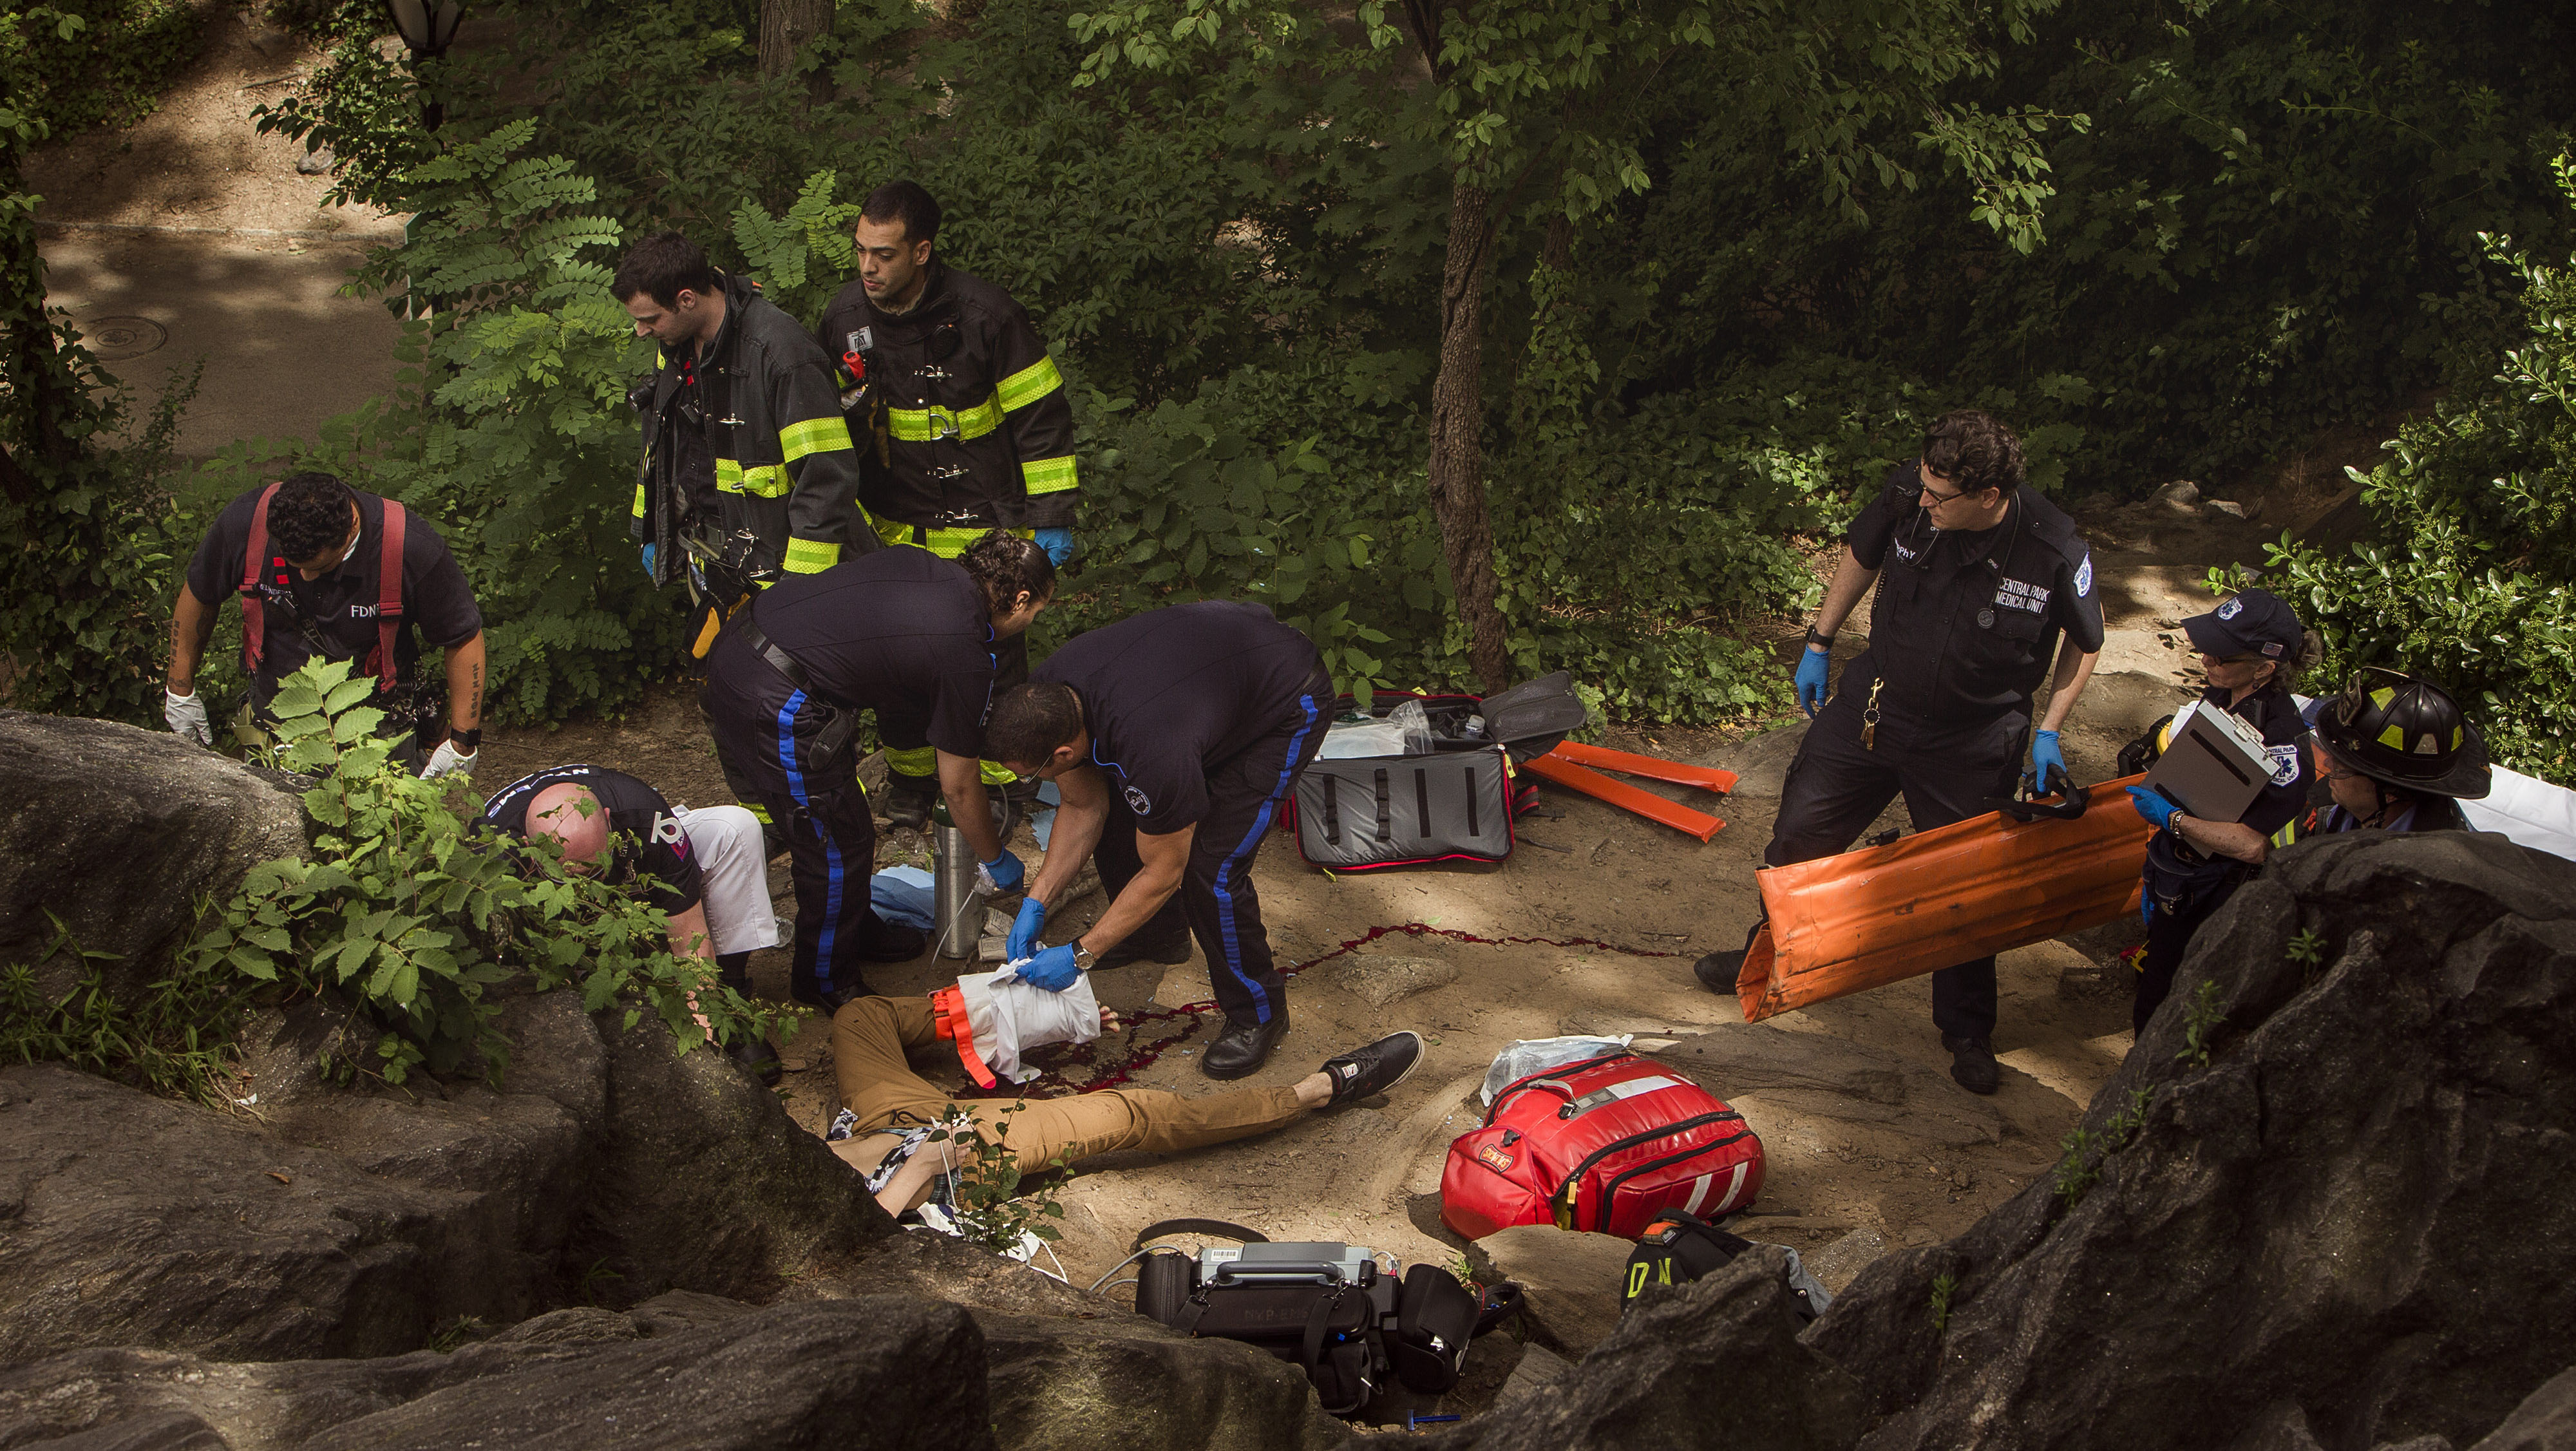 Central Park small explosion - AP - H